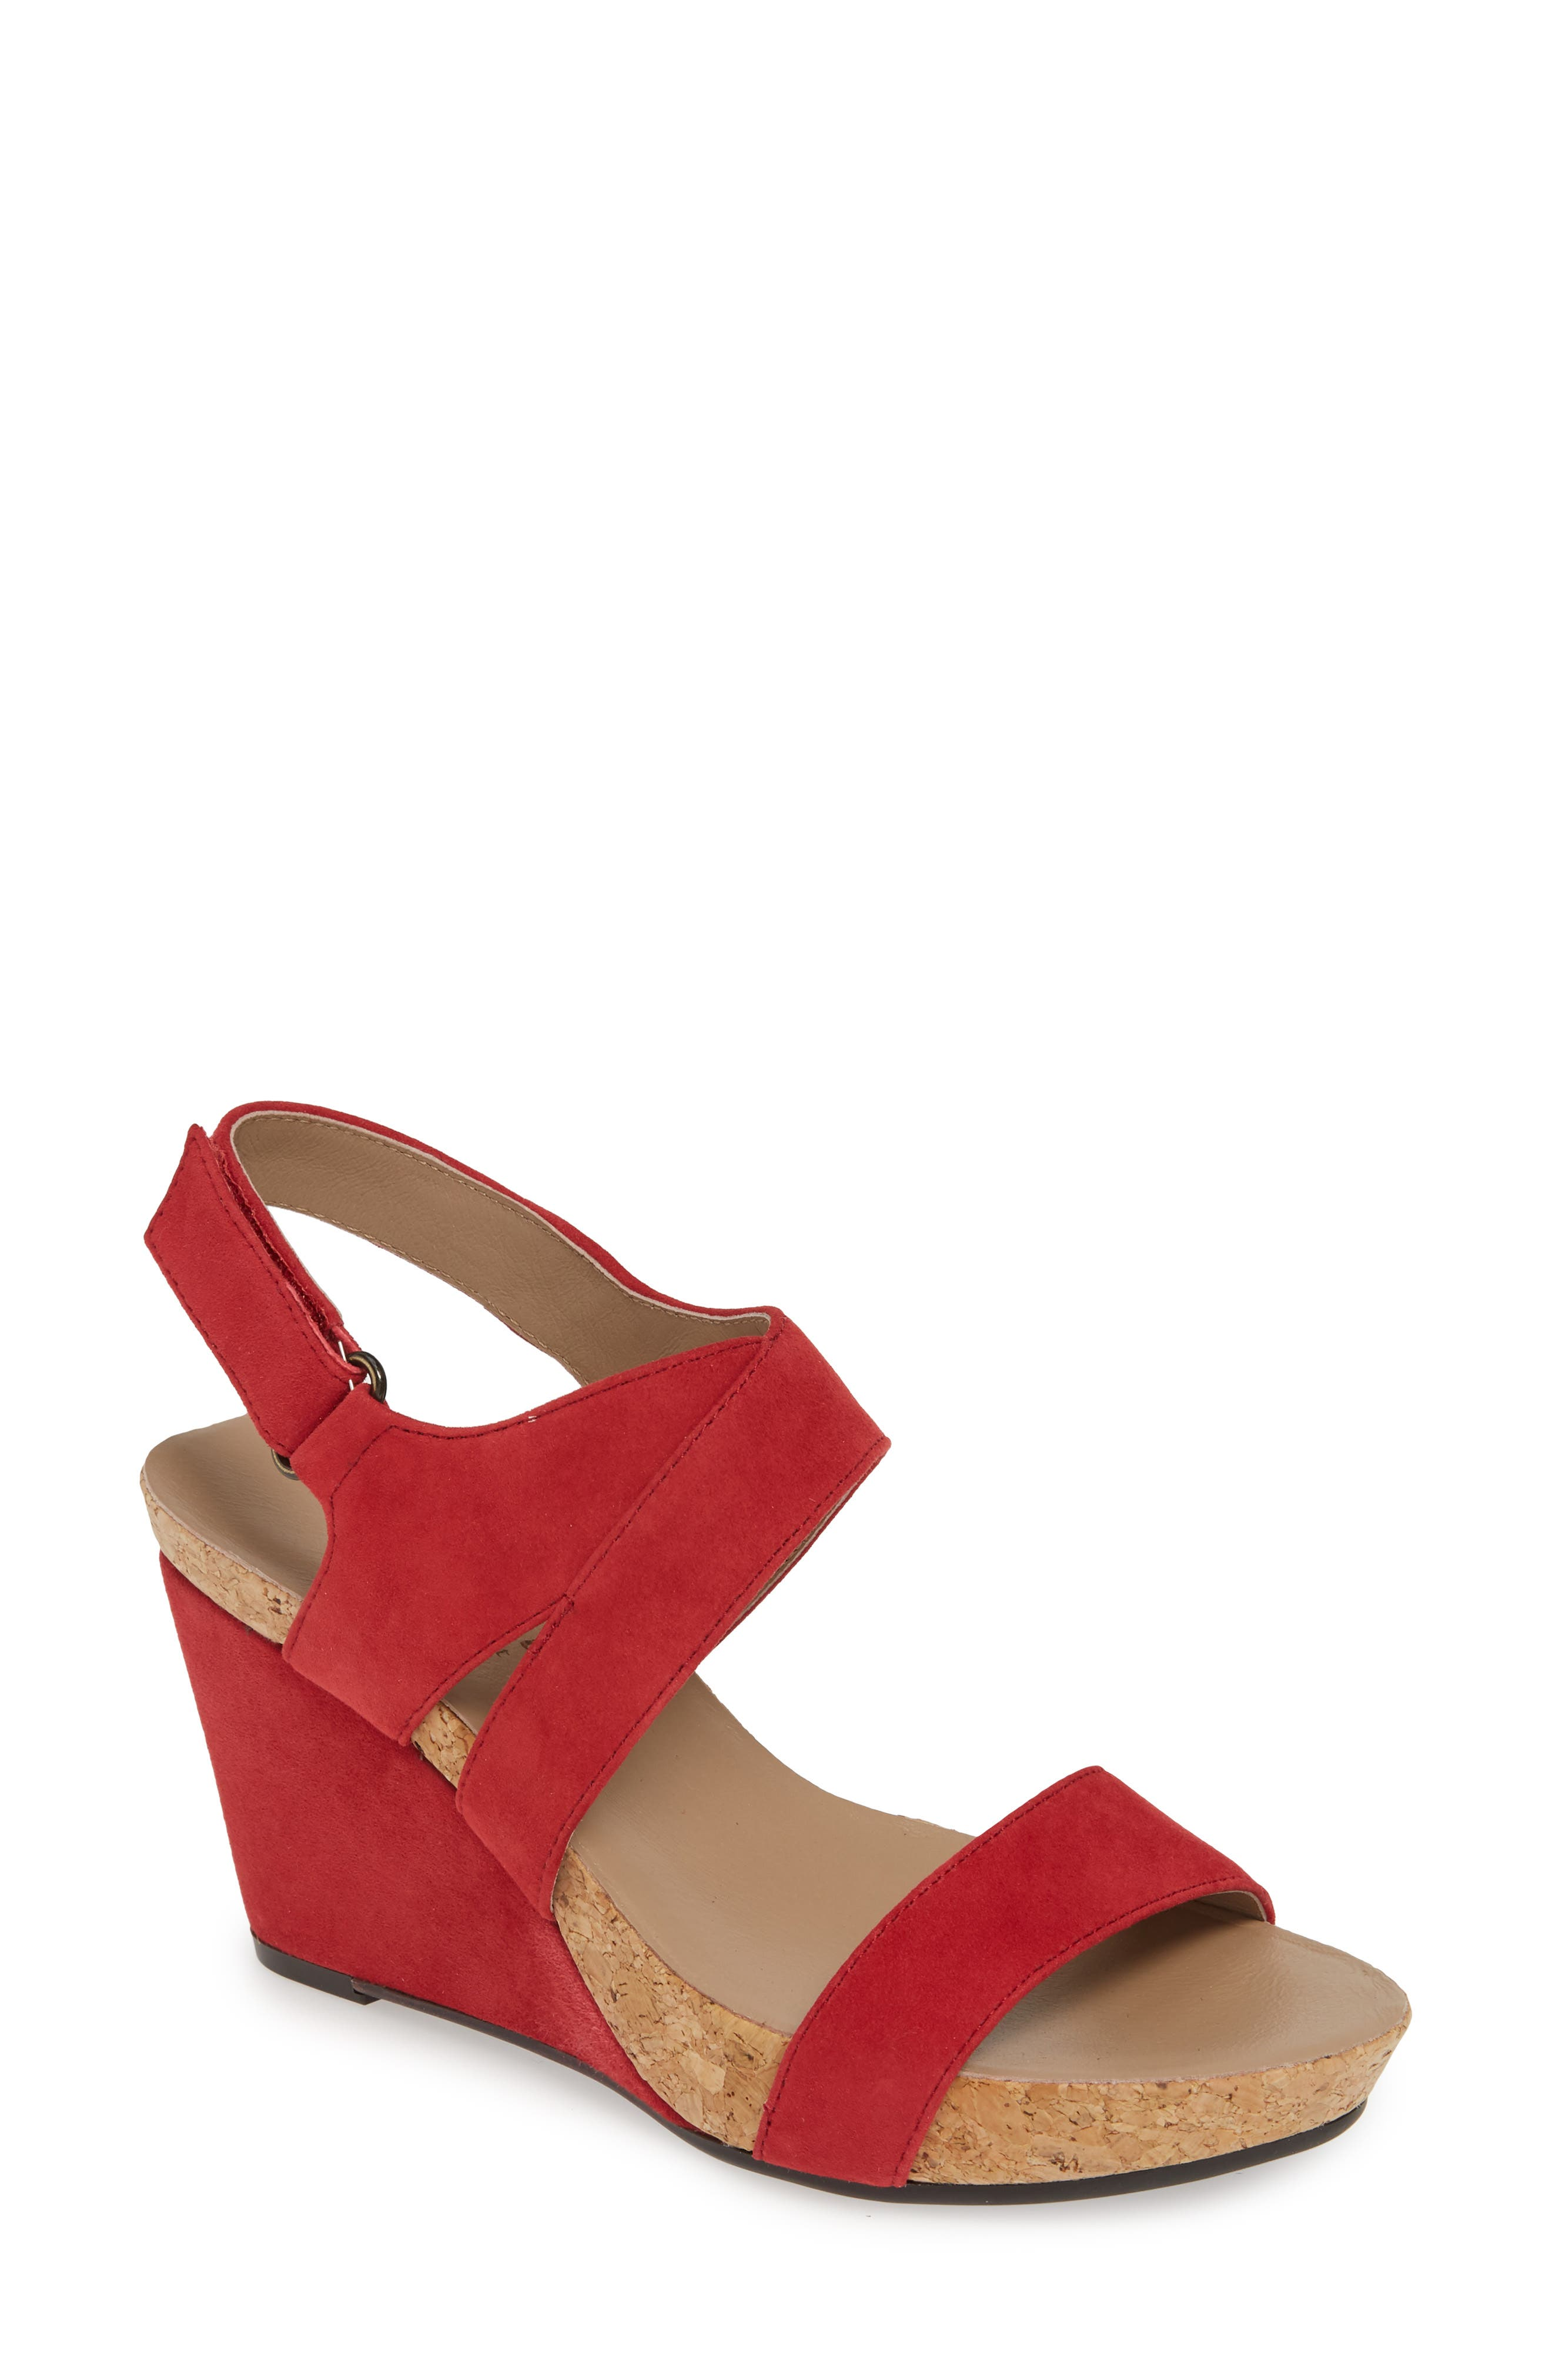 Bettye Muller Concepts Trent Slingback Wedge, Red